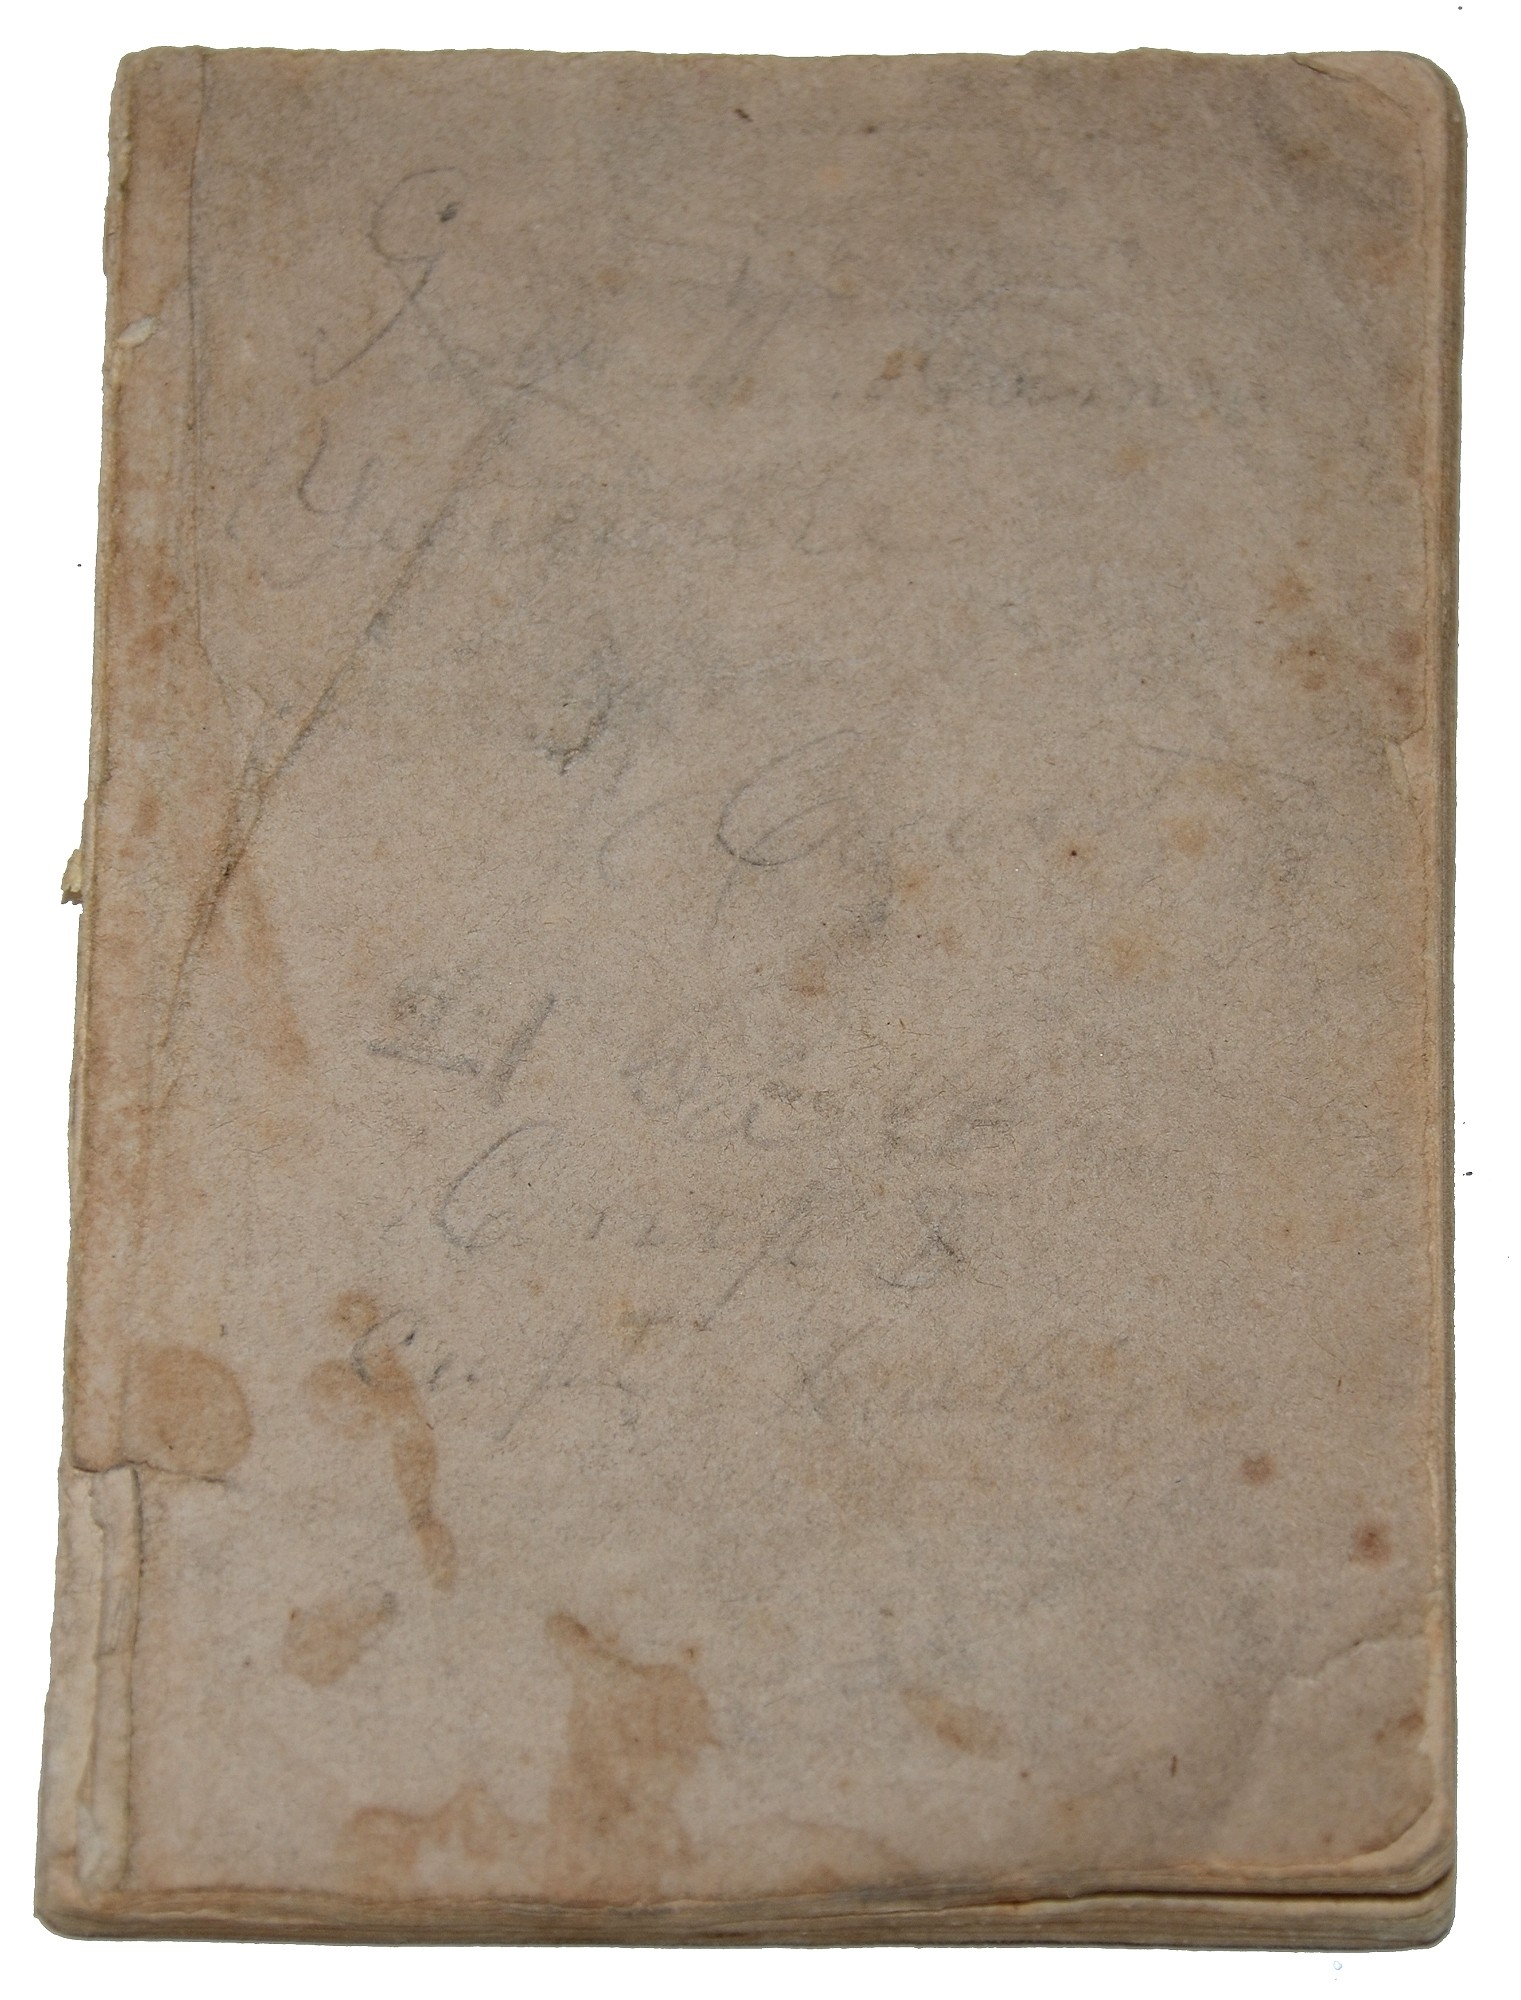 INSCRIBED SOLDIER'S PRAYER BOOK OF GEORGE W. MOWERS Co. D 21st PA CAVALRY